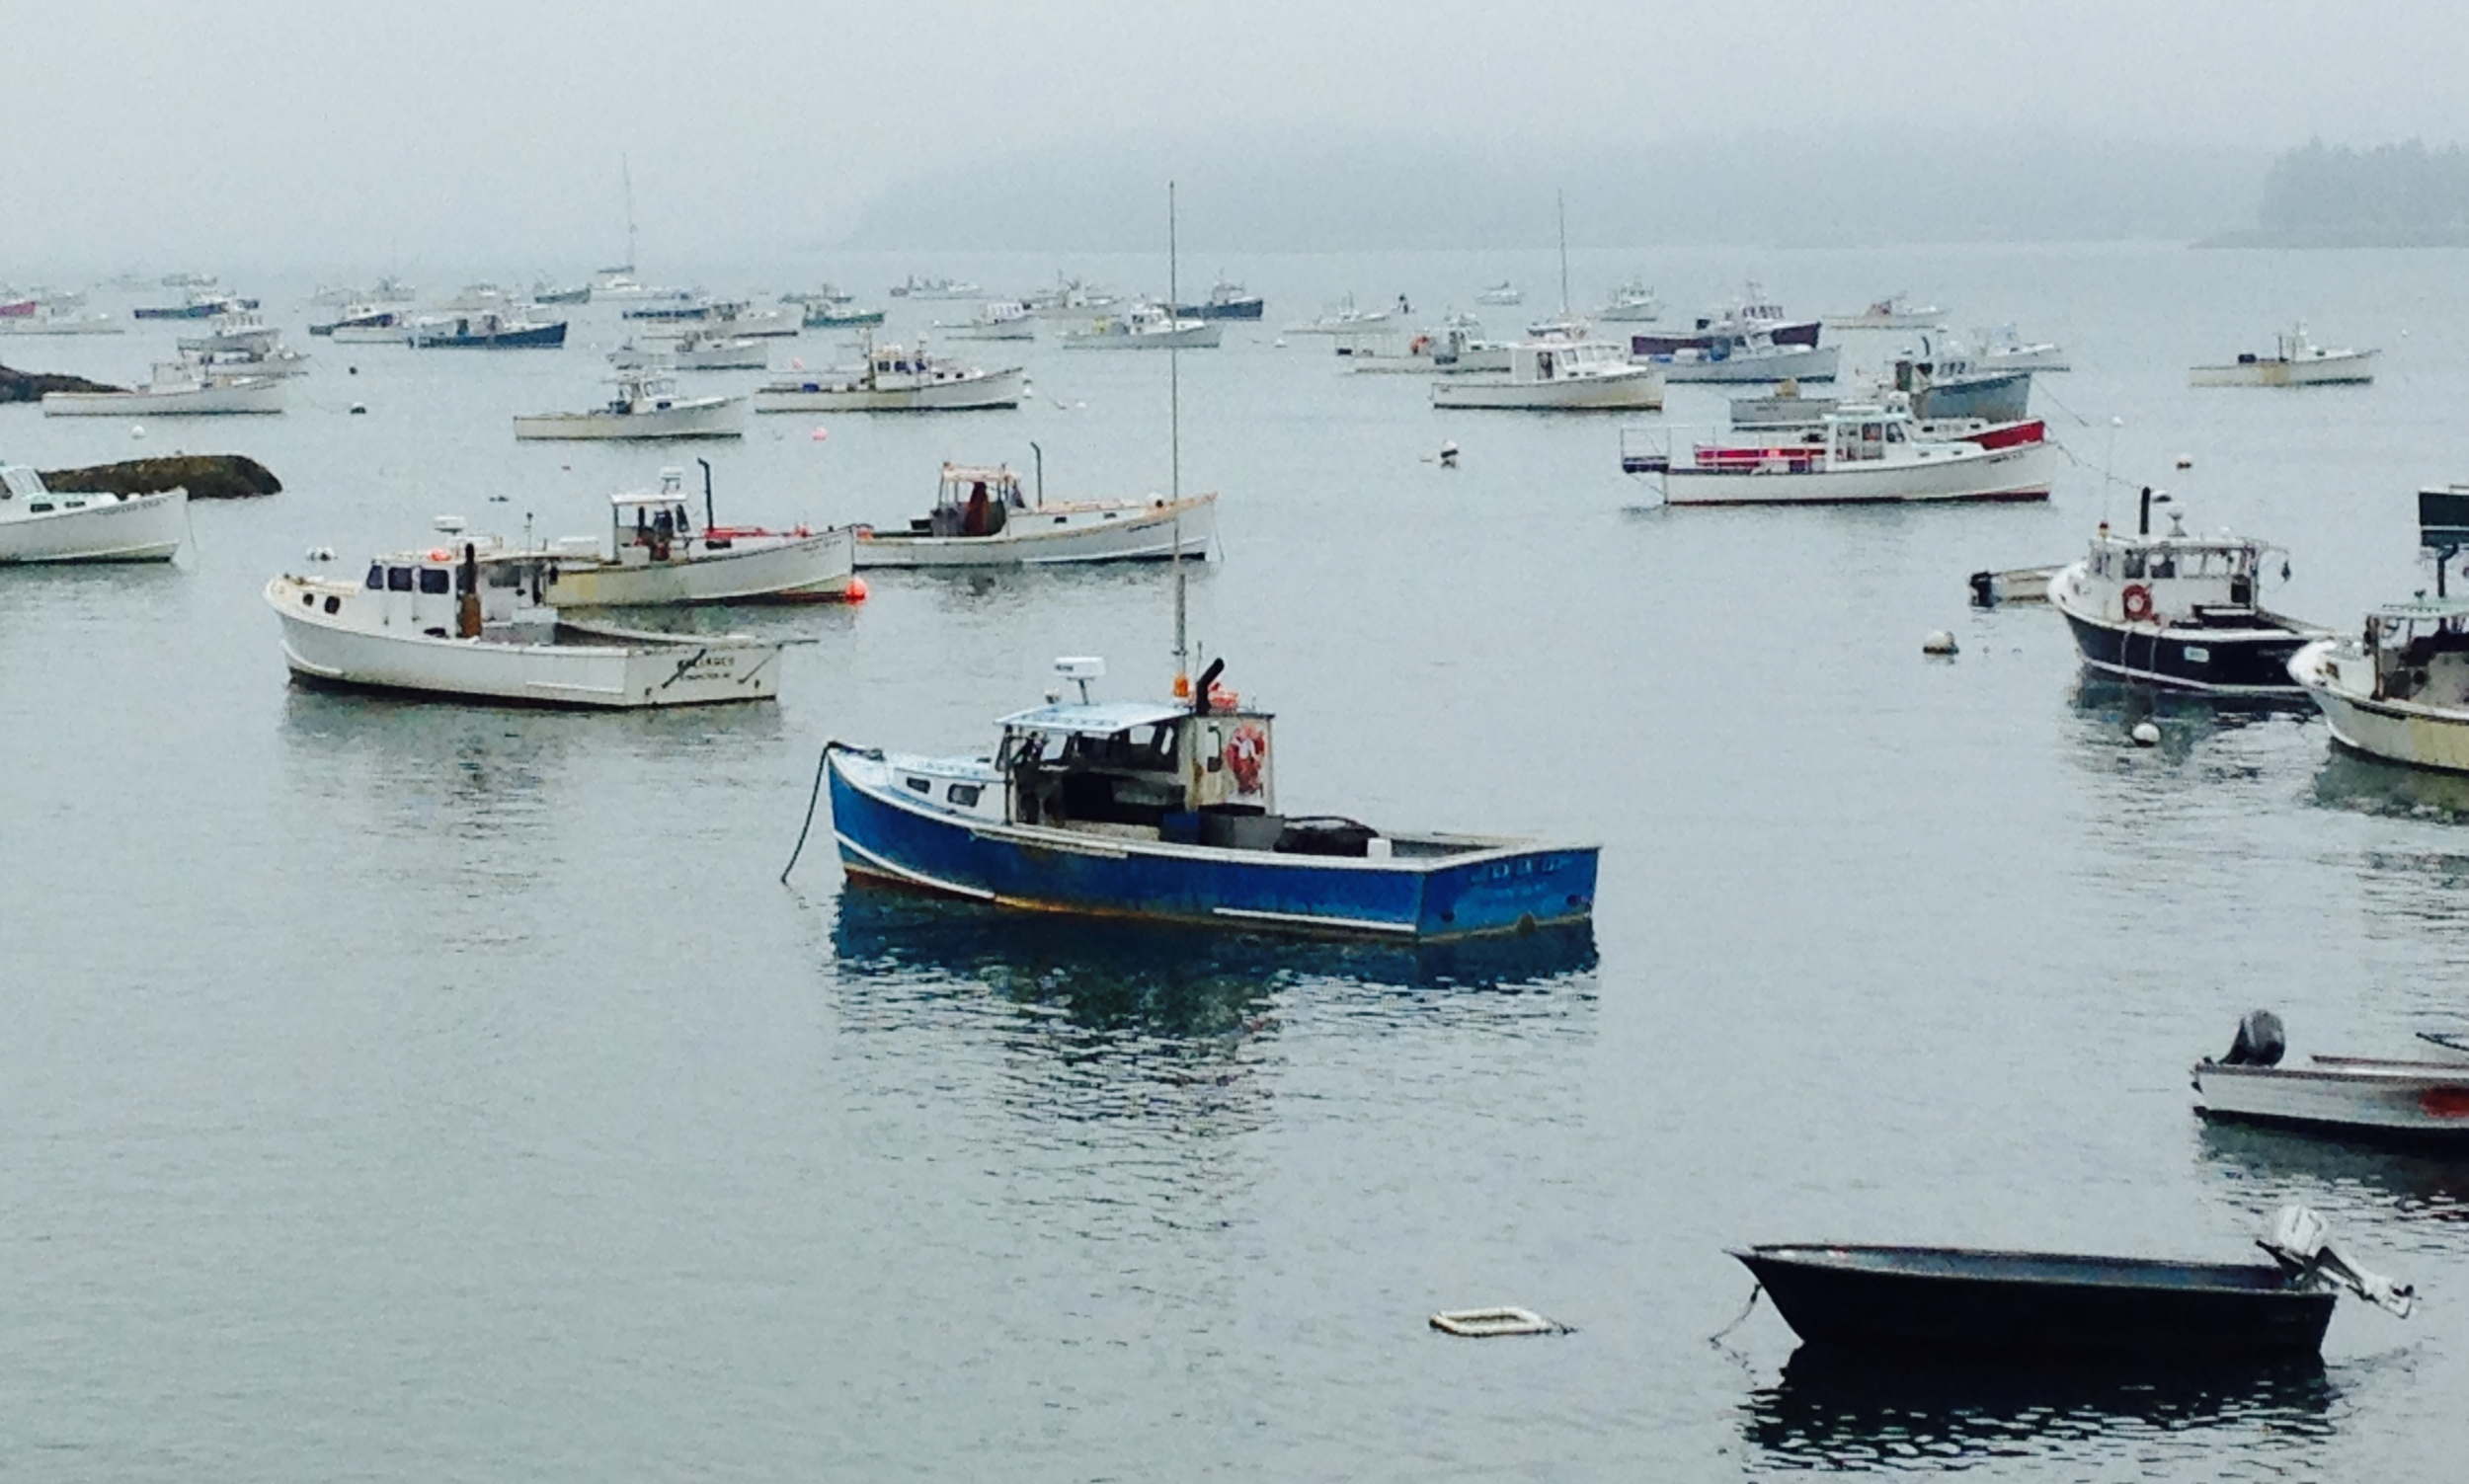 Lobster boats on their moorings in stonington, Maine